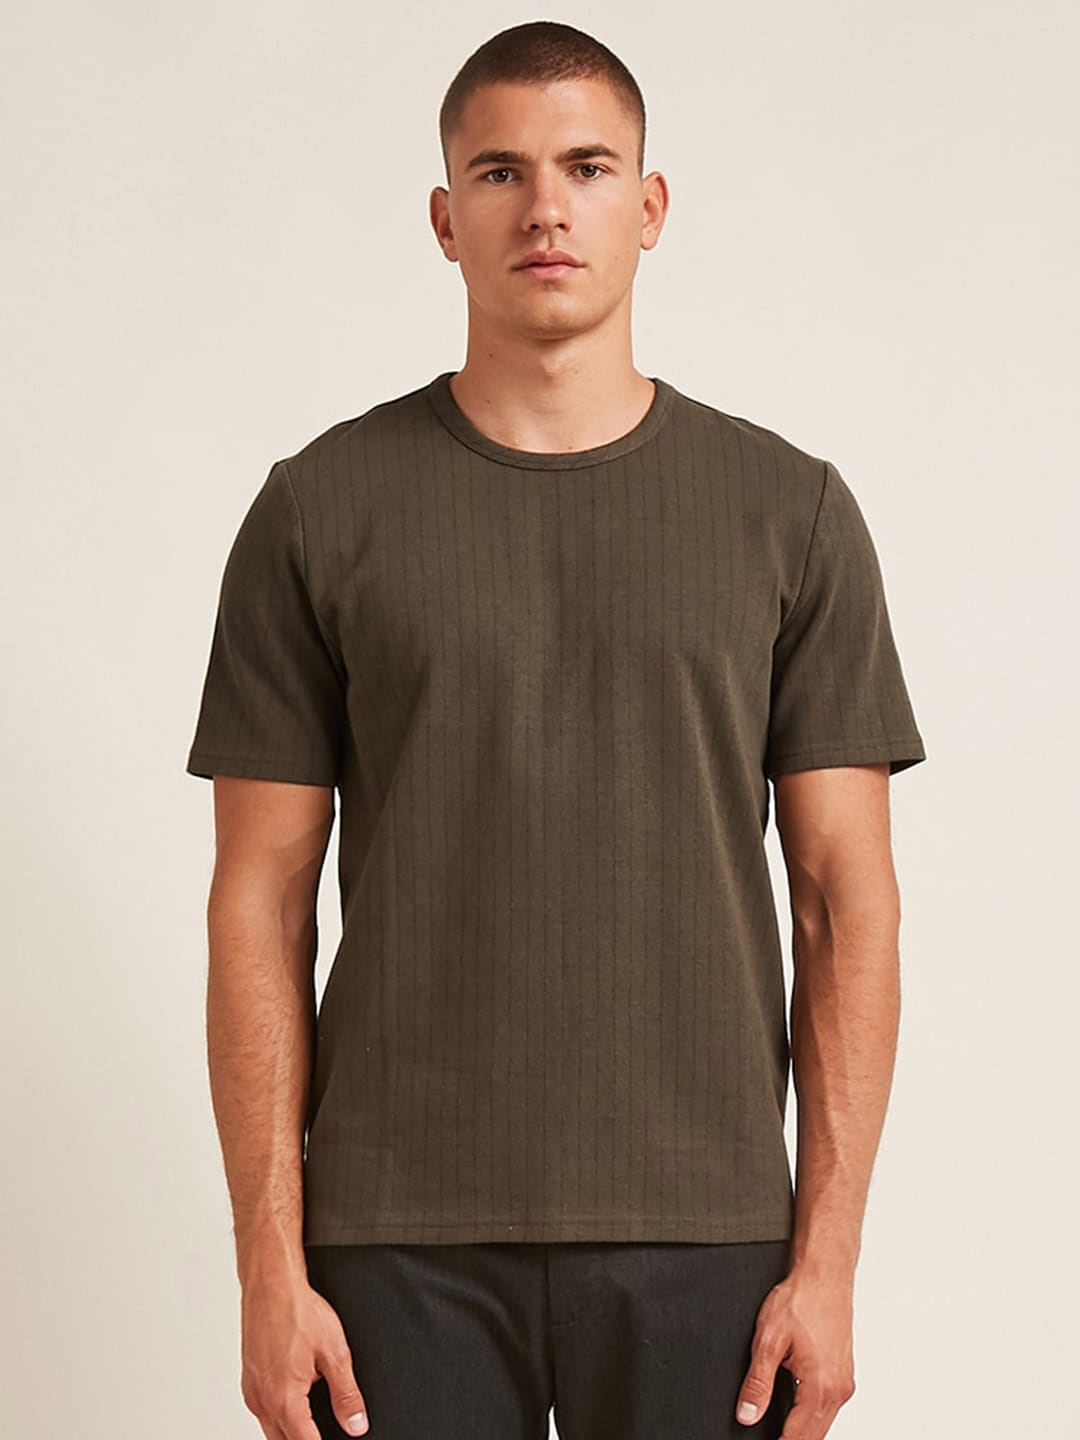 ee1bd56978a159 Forever 21 Men - Buy Forever 21 Men online in India